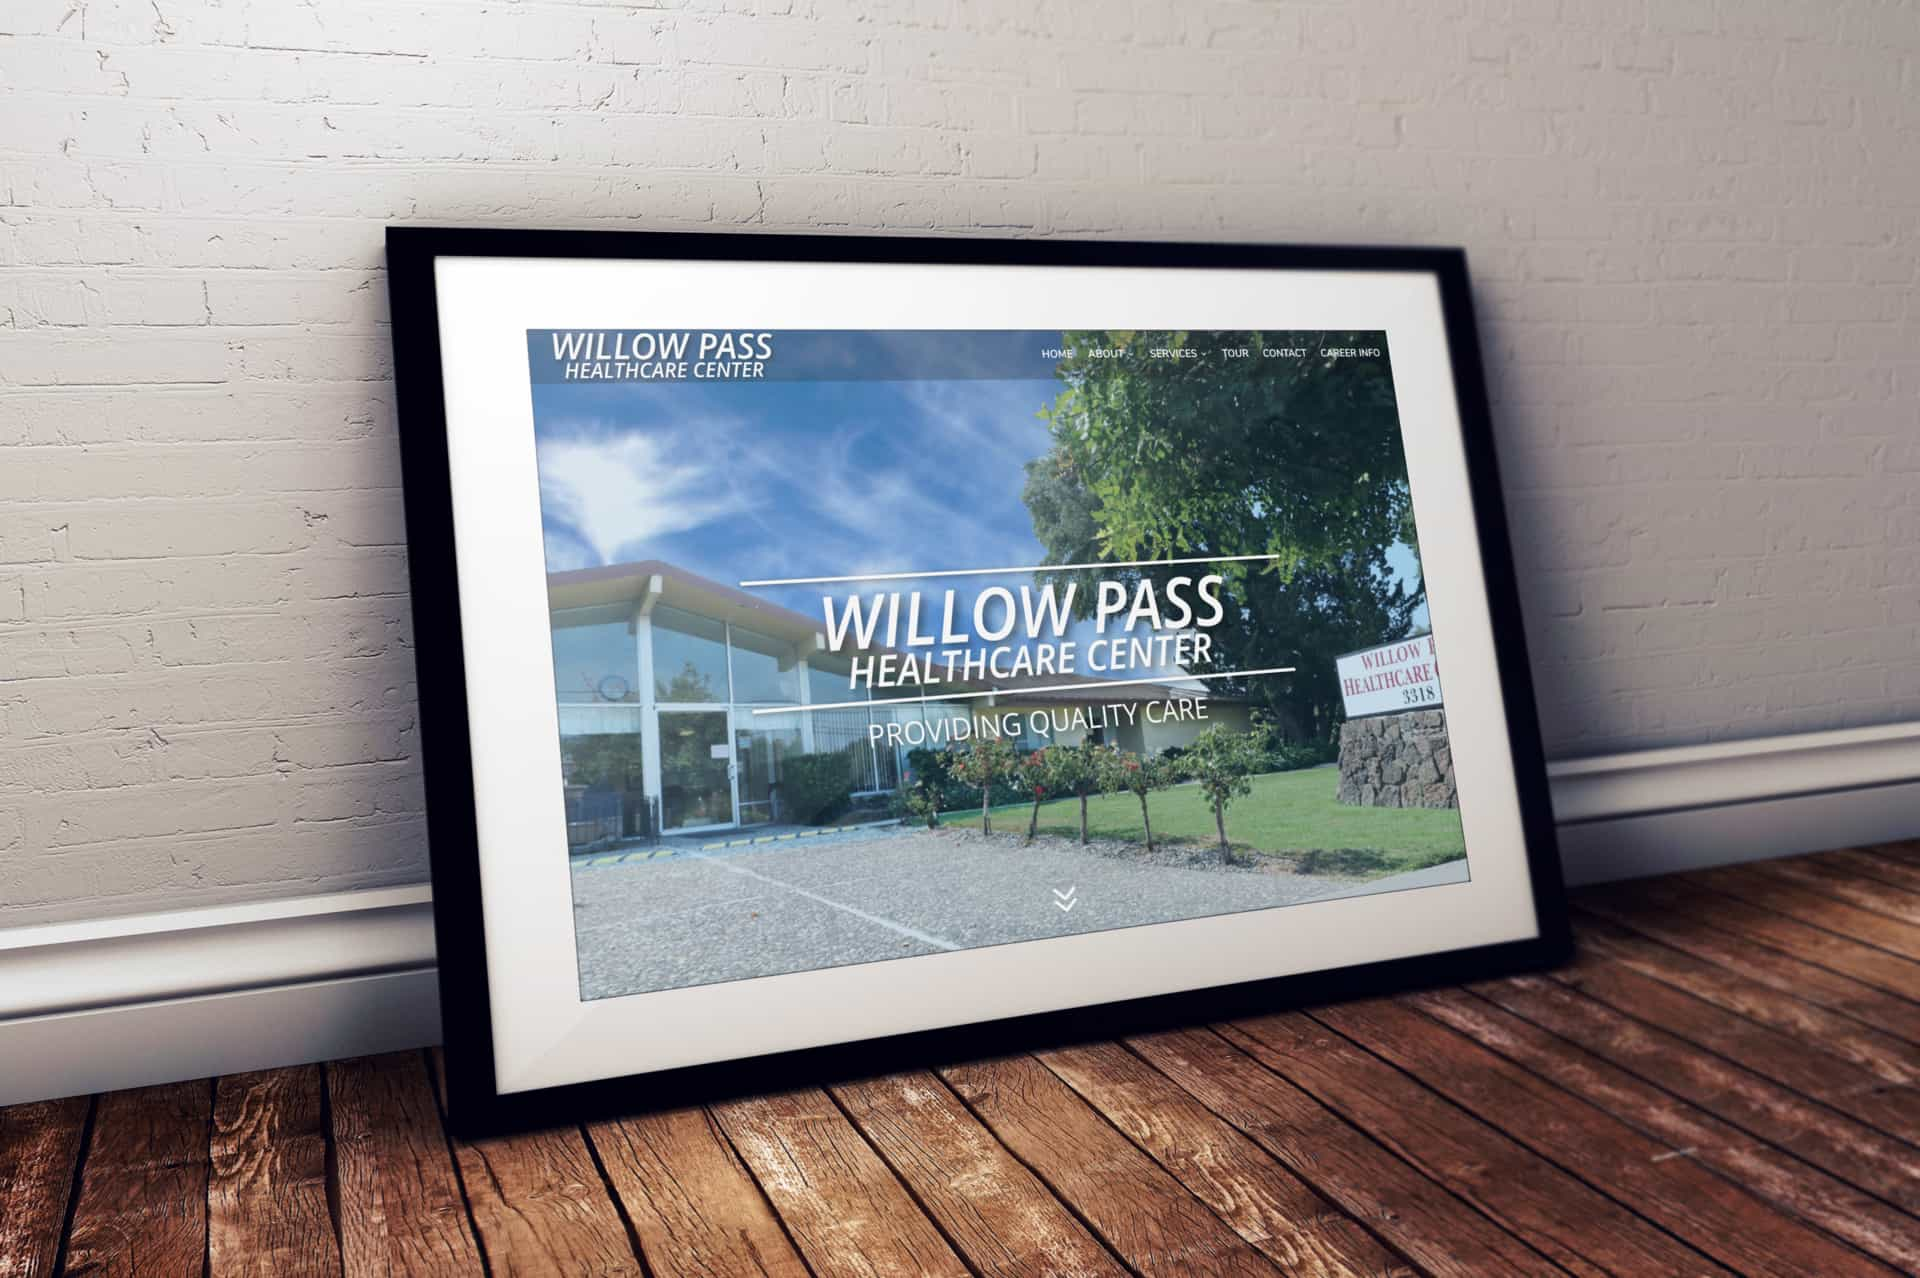 Willow Pass Healthcare